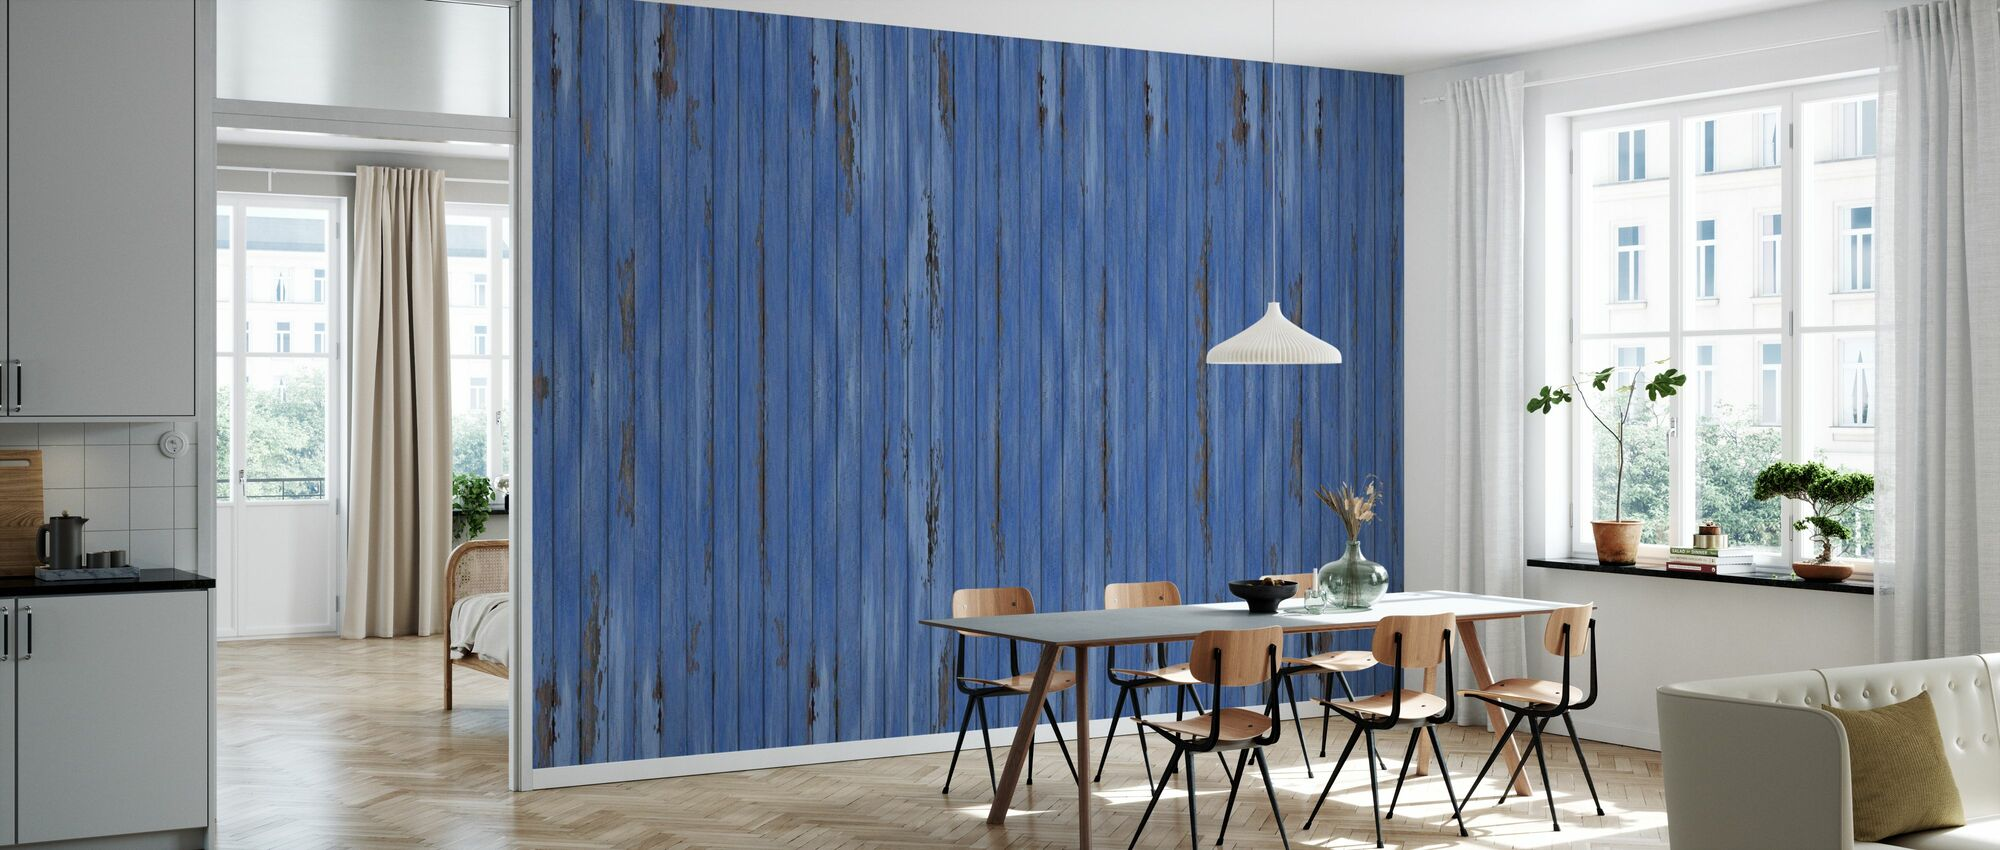 Blue Vintage Wood Wall - Wallpaper - Kitchen